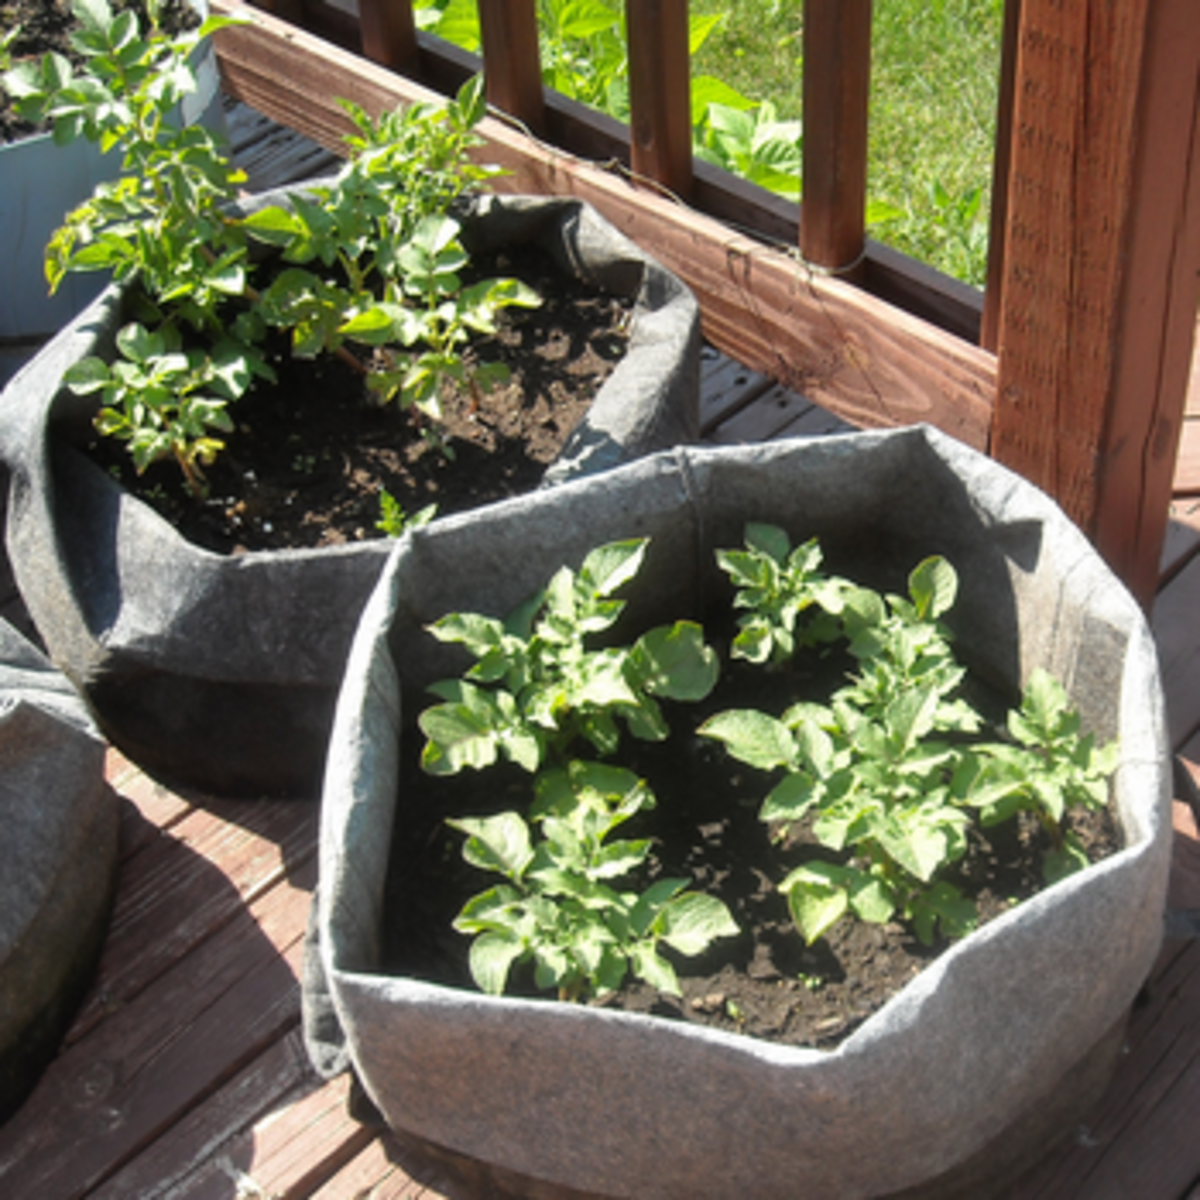 Smart Pots - Fabric Planting Bags Grow Potatoes Easily!